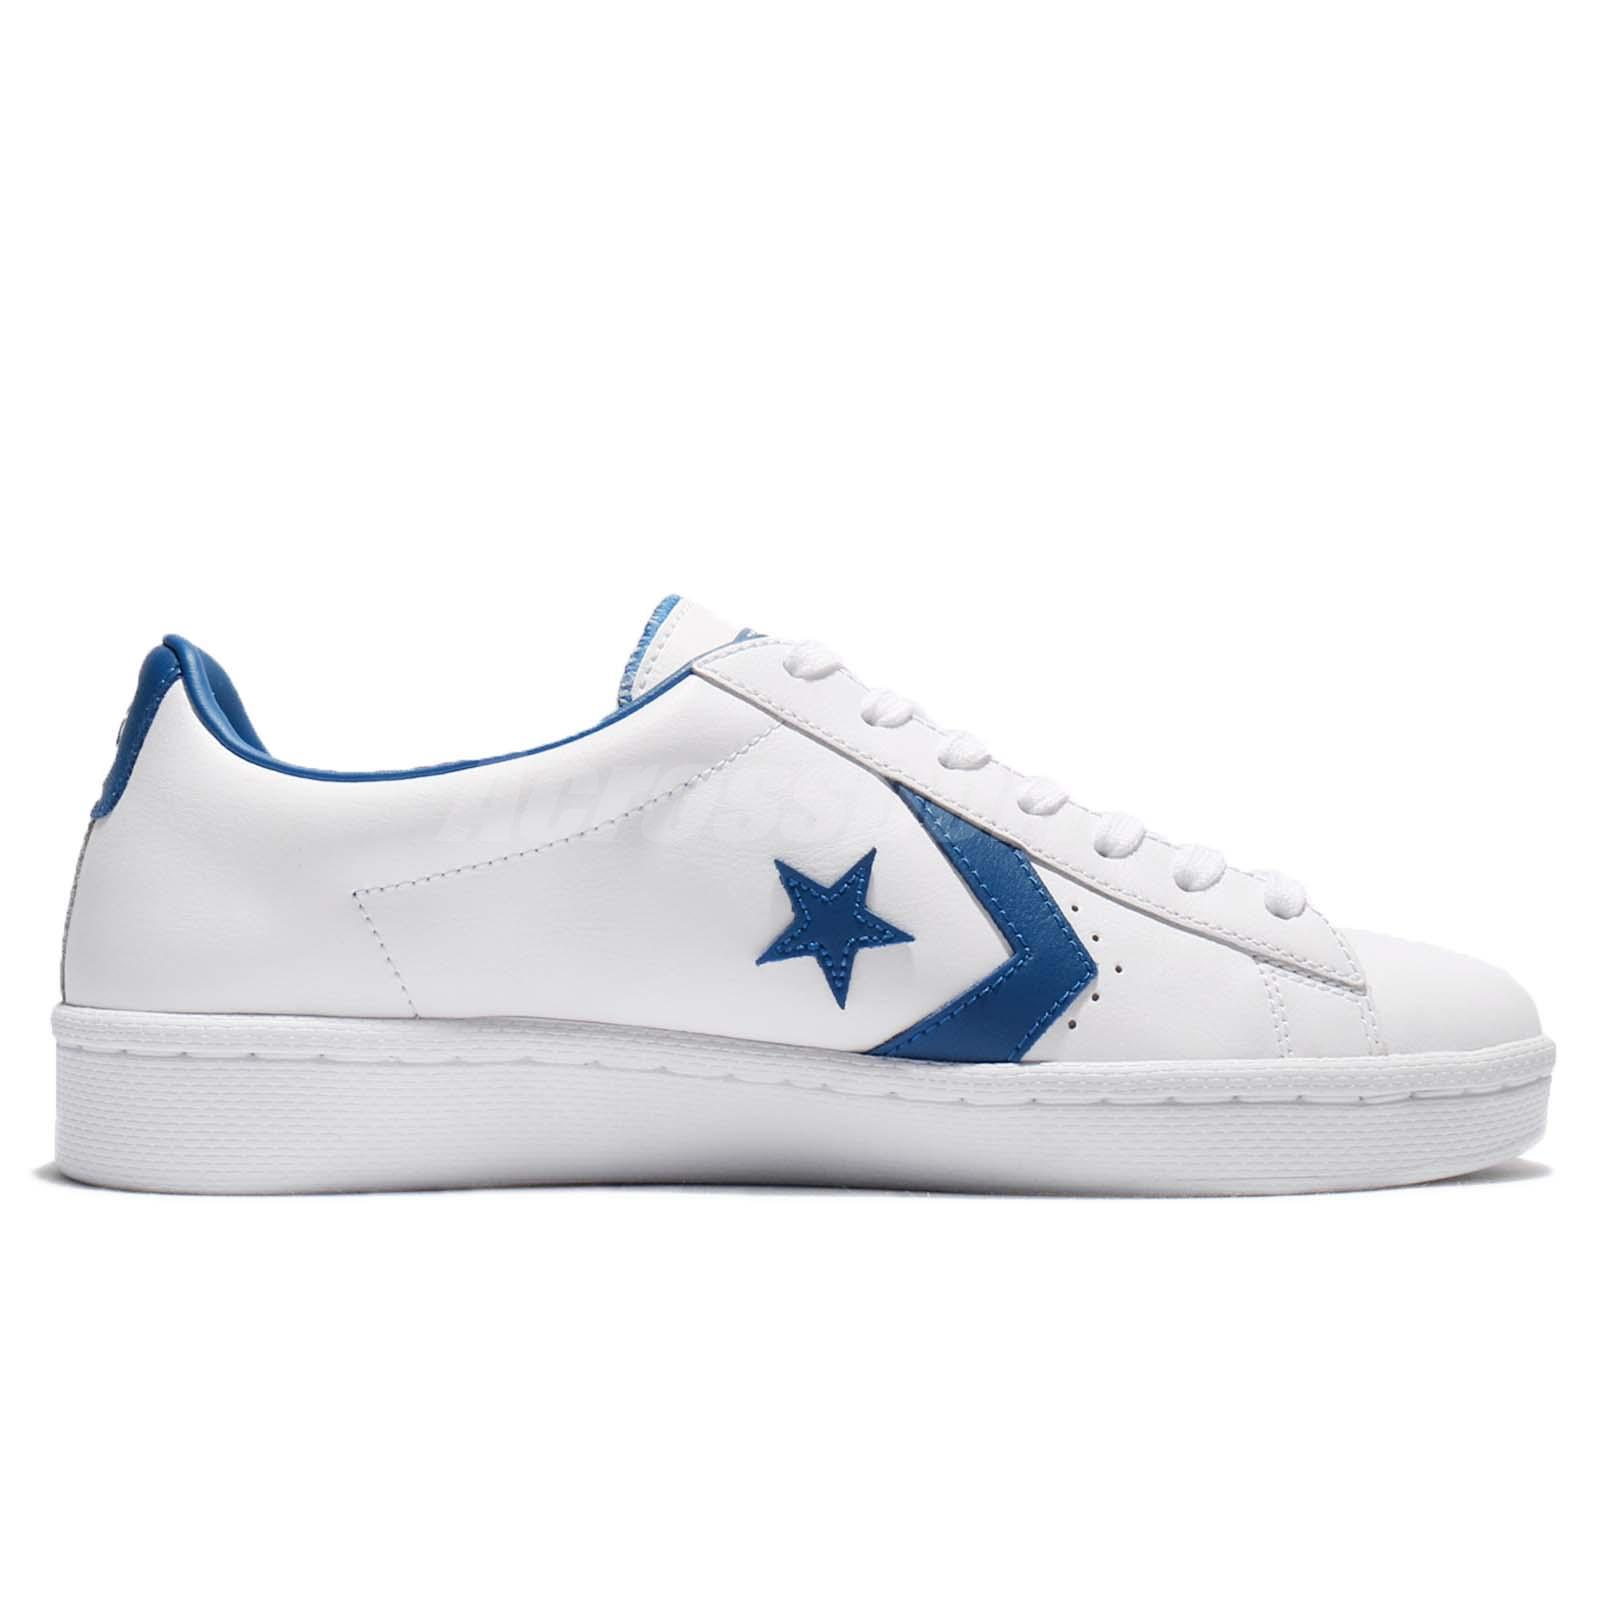 top design high fashion sale retailer Details about Converse PL 76 Pro Leather White Blue Jay Men Vintage Shoes  Sneakers 157807C